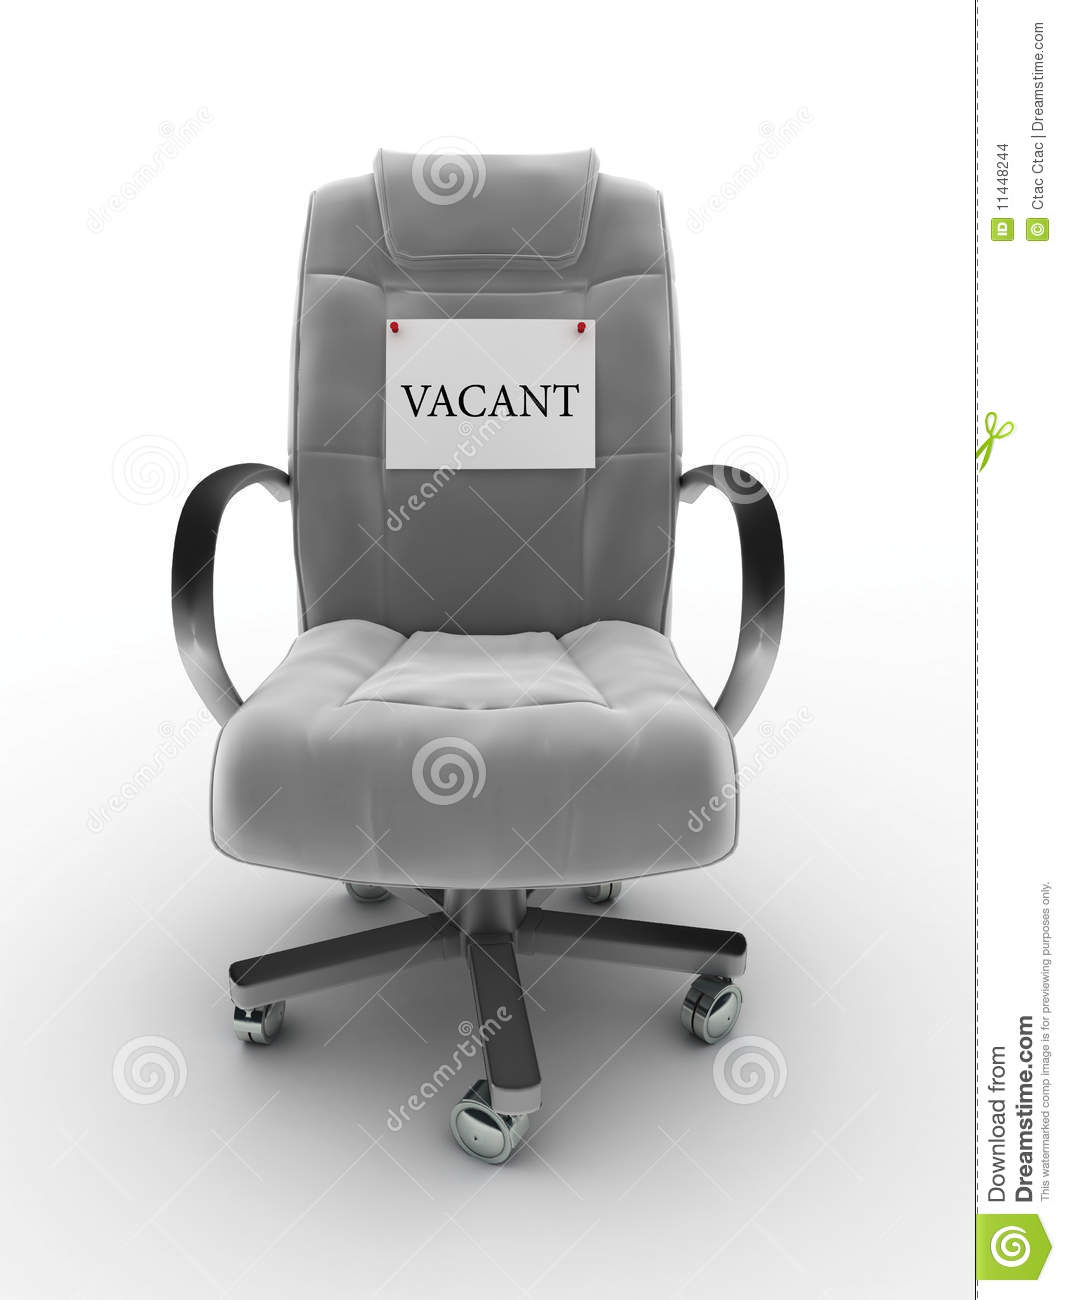 Vacant Seat Stock Images - Image: 11448244